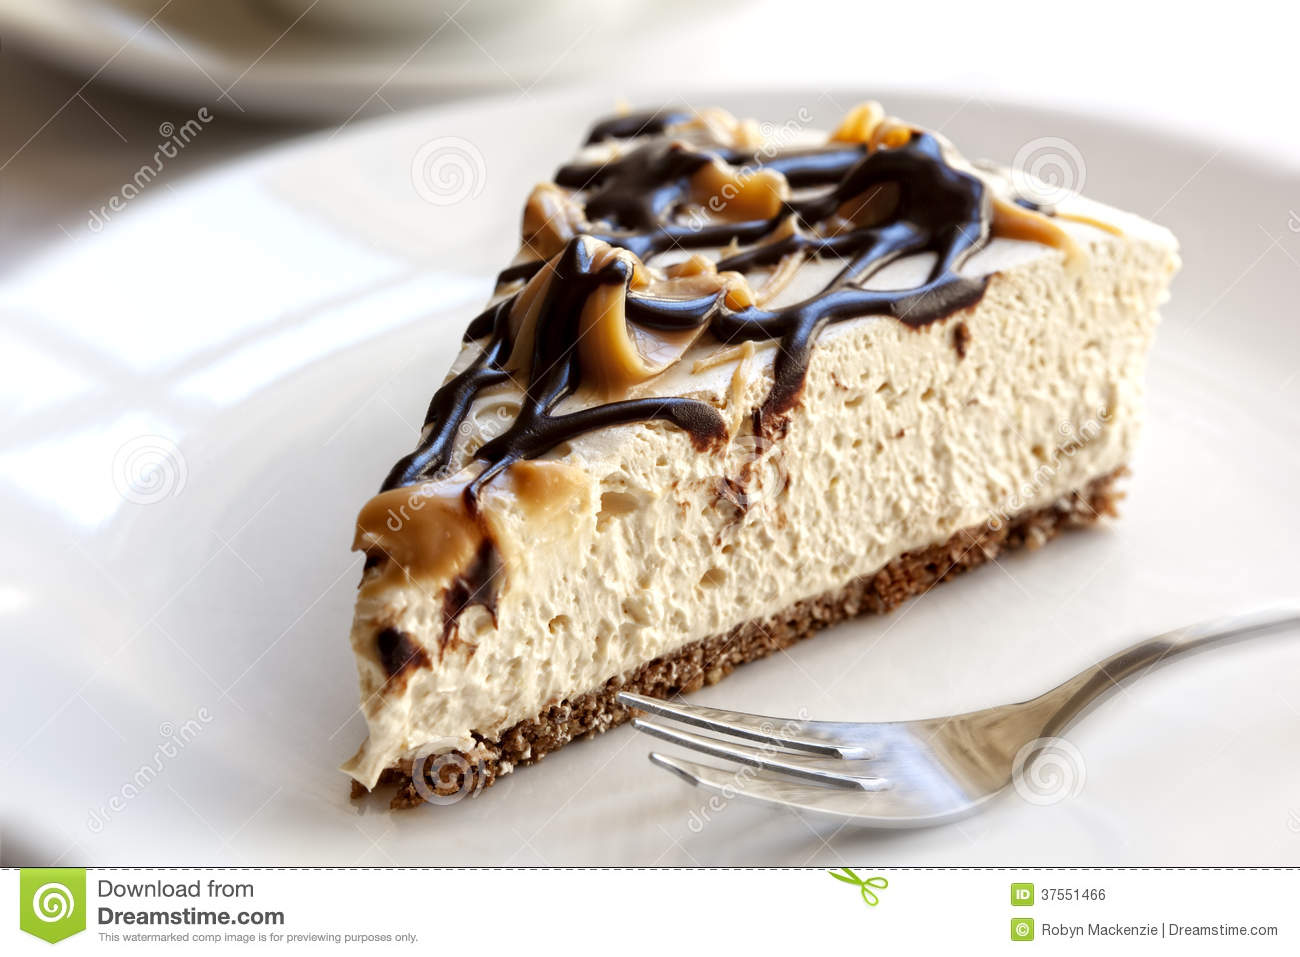 Chocolate Caramel Cheesecake Royalty Free Stock Image - Image ...